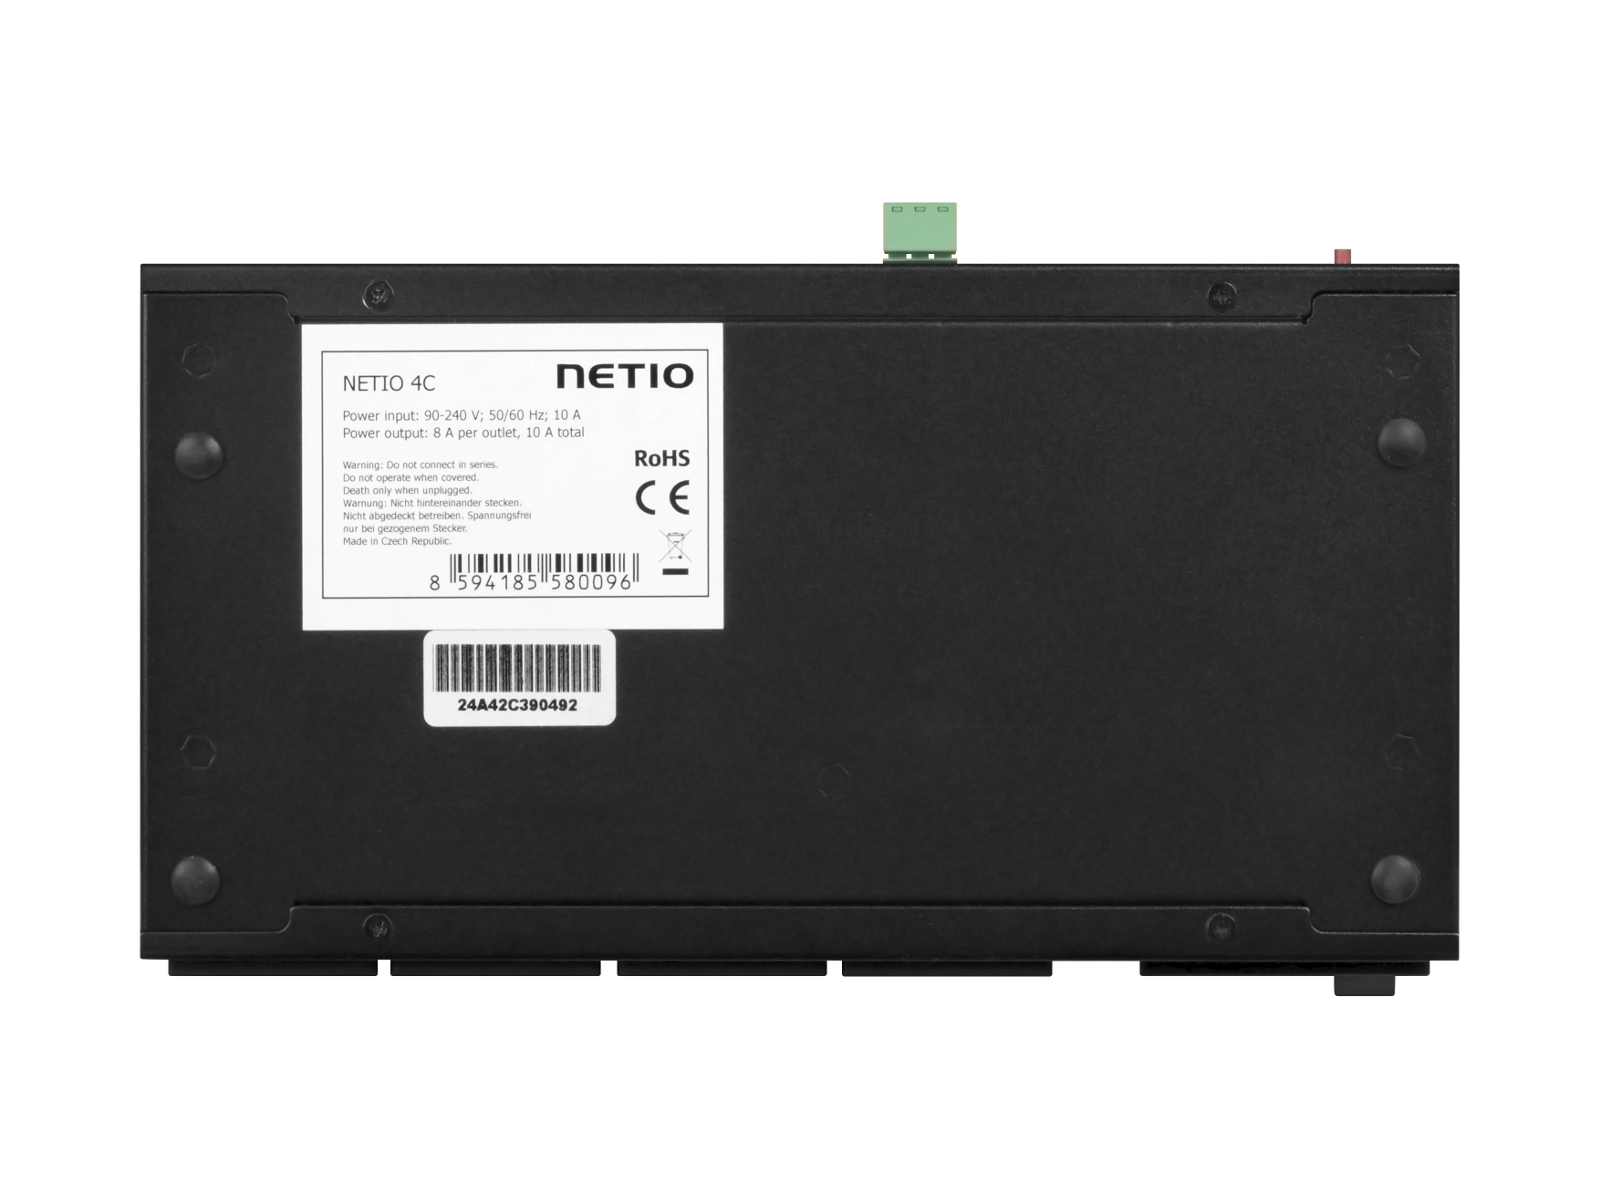 Netio 4c Smart Pdu With M2m Api Protocol Support And